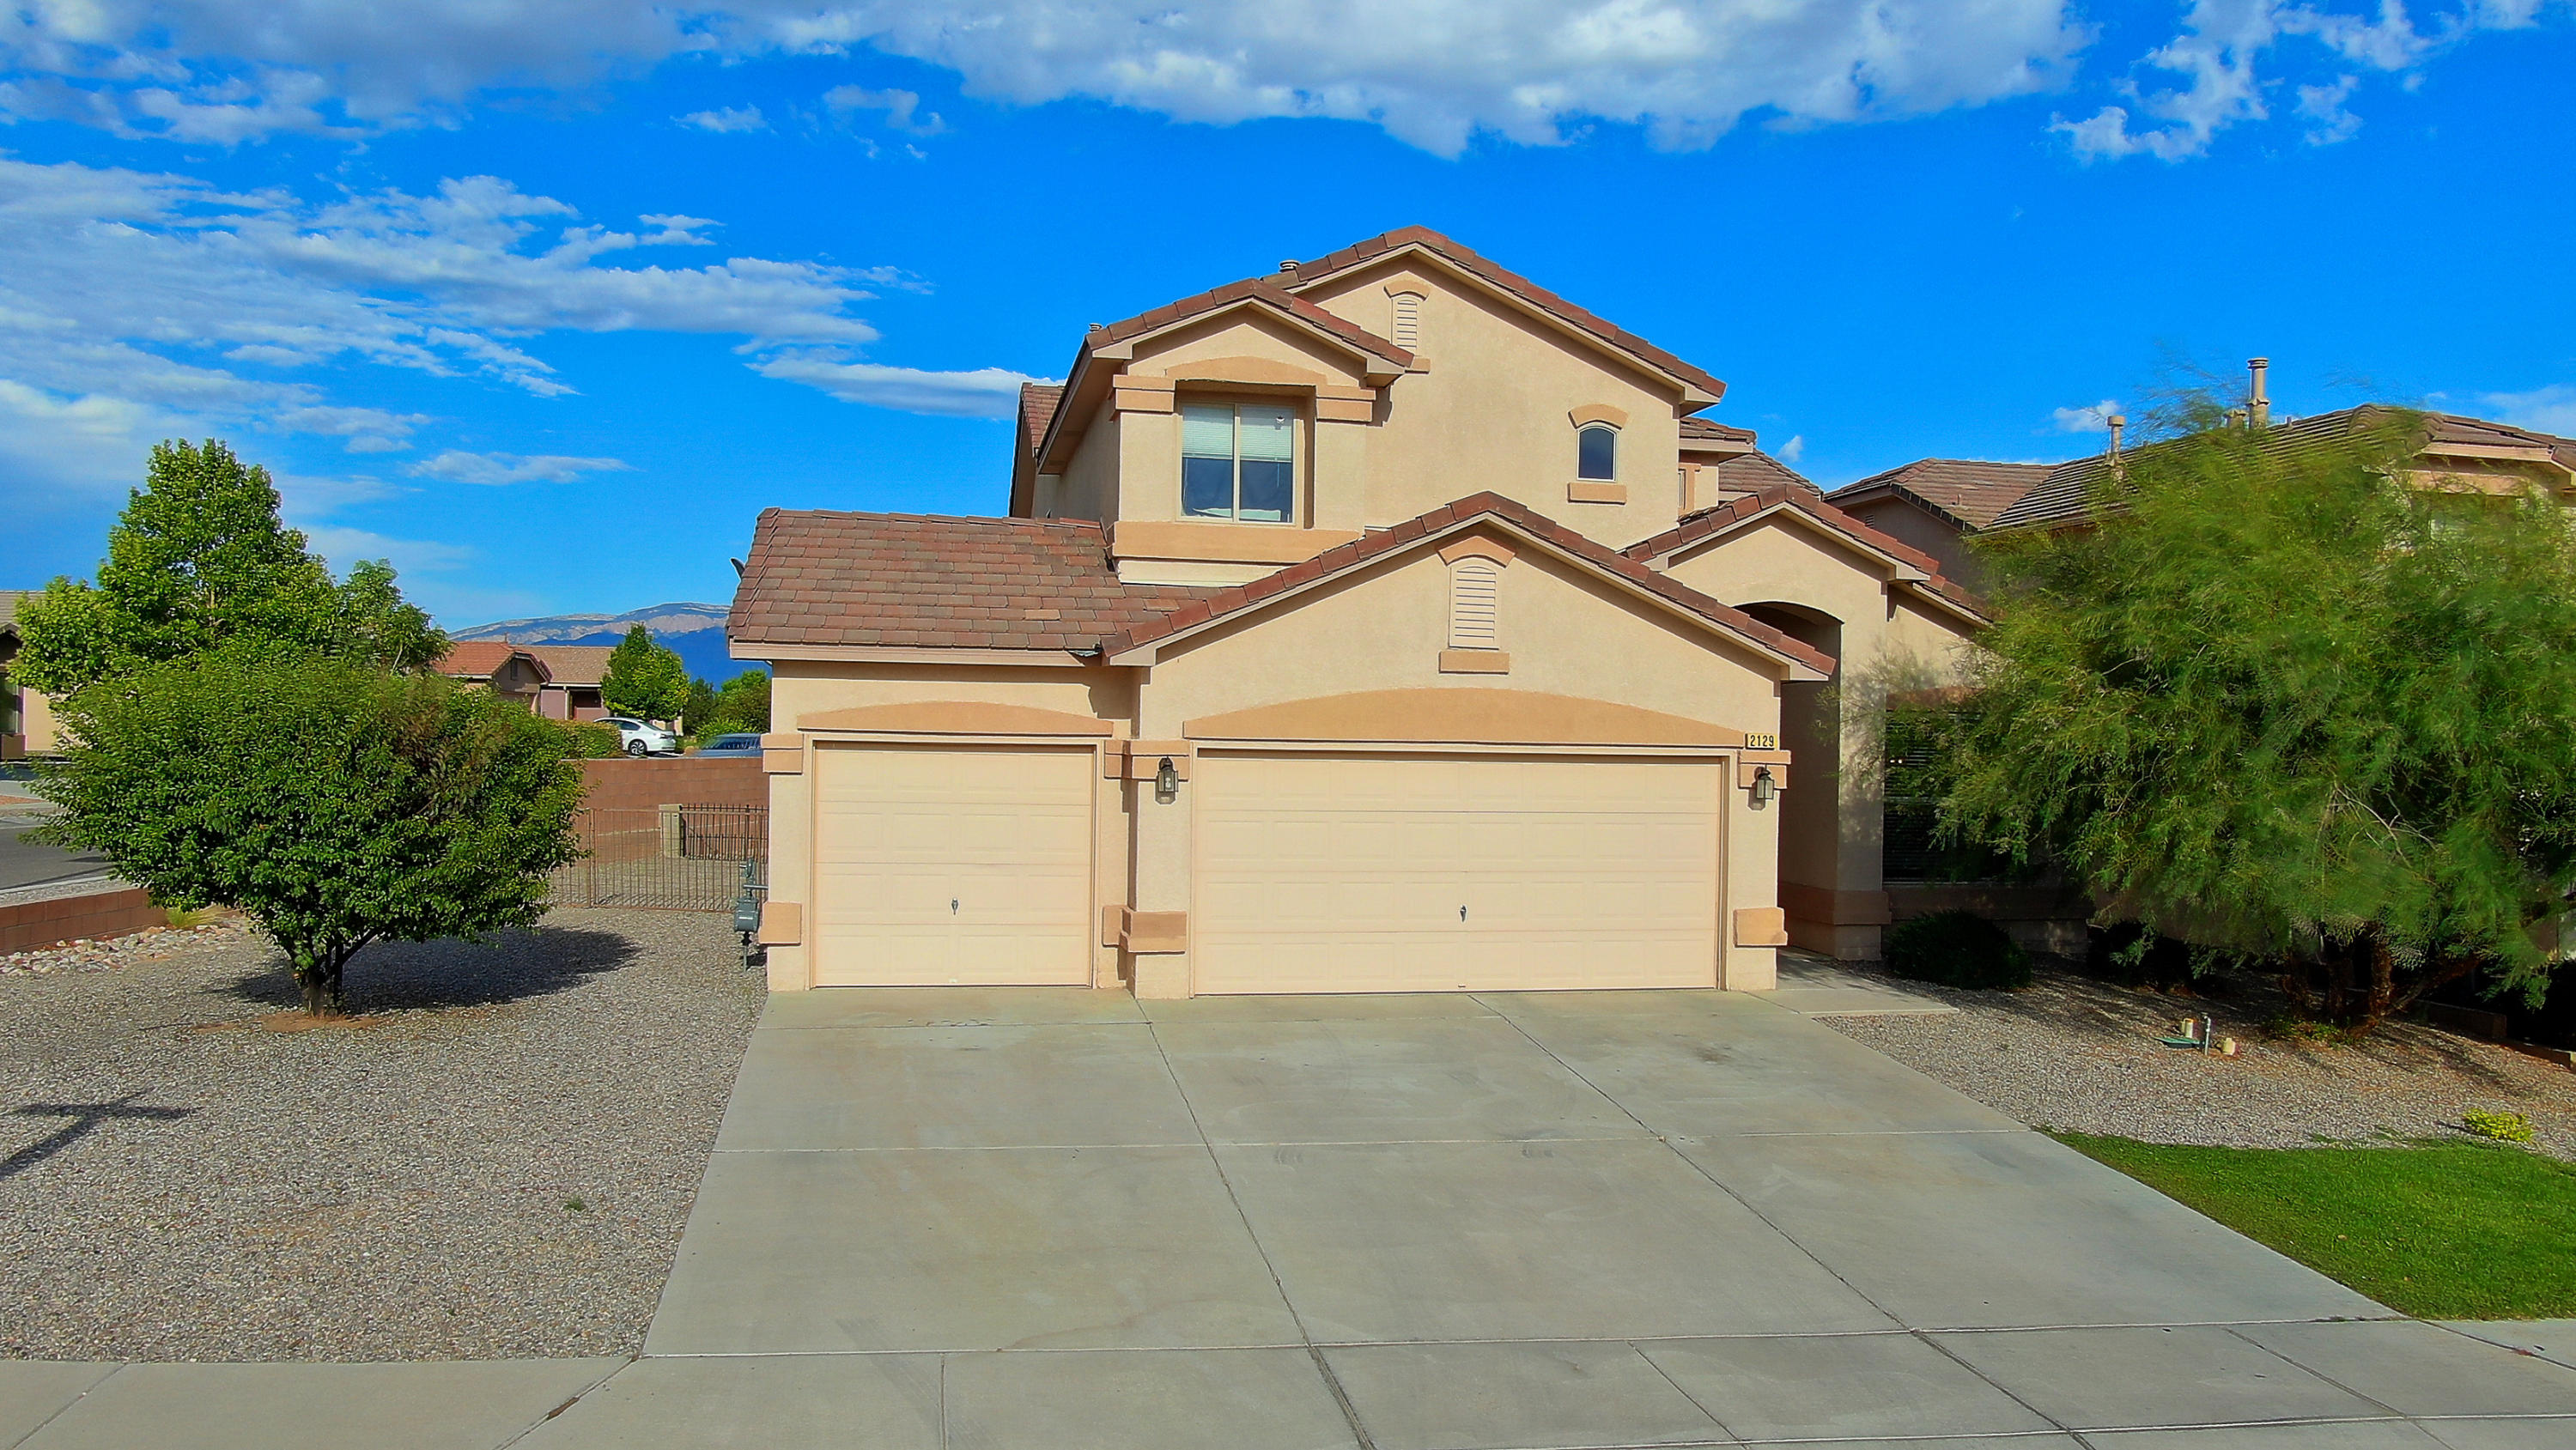 2129 VISTA DE COLINAS Drive SE, Rio Rancho, NM 87124 - Rio Rancho, NM real estate listing